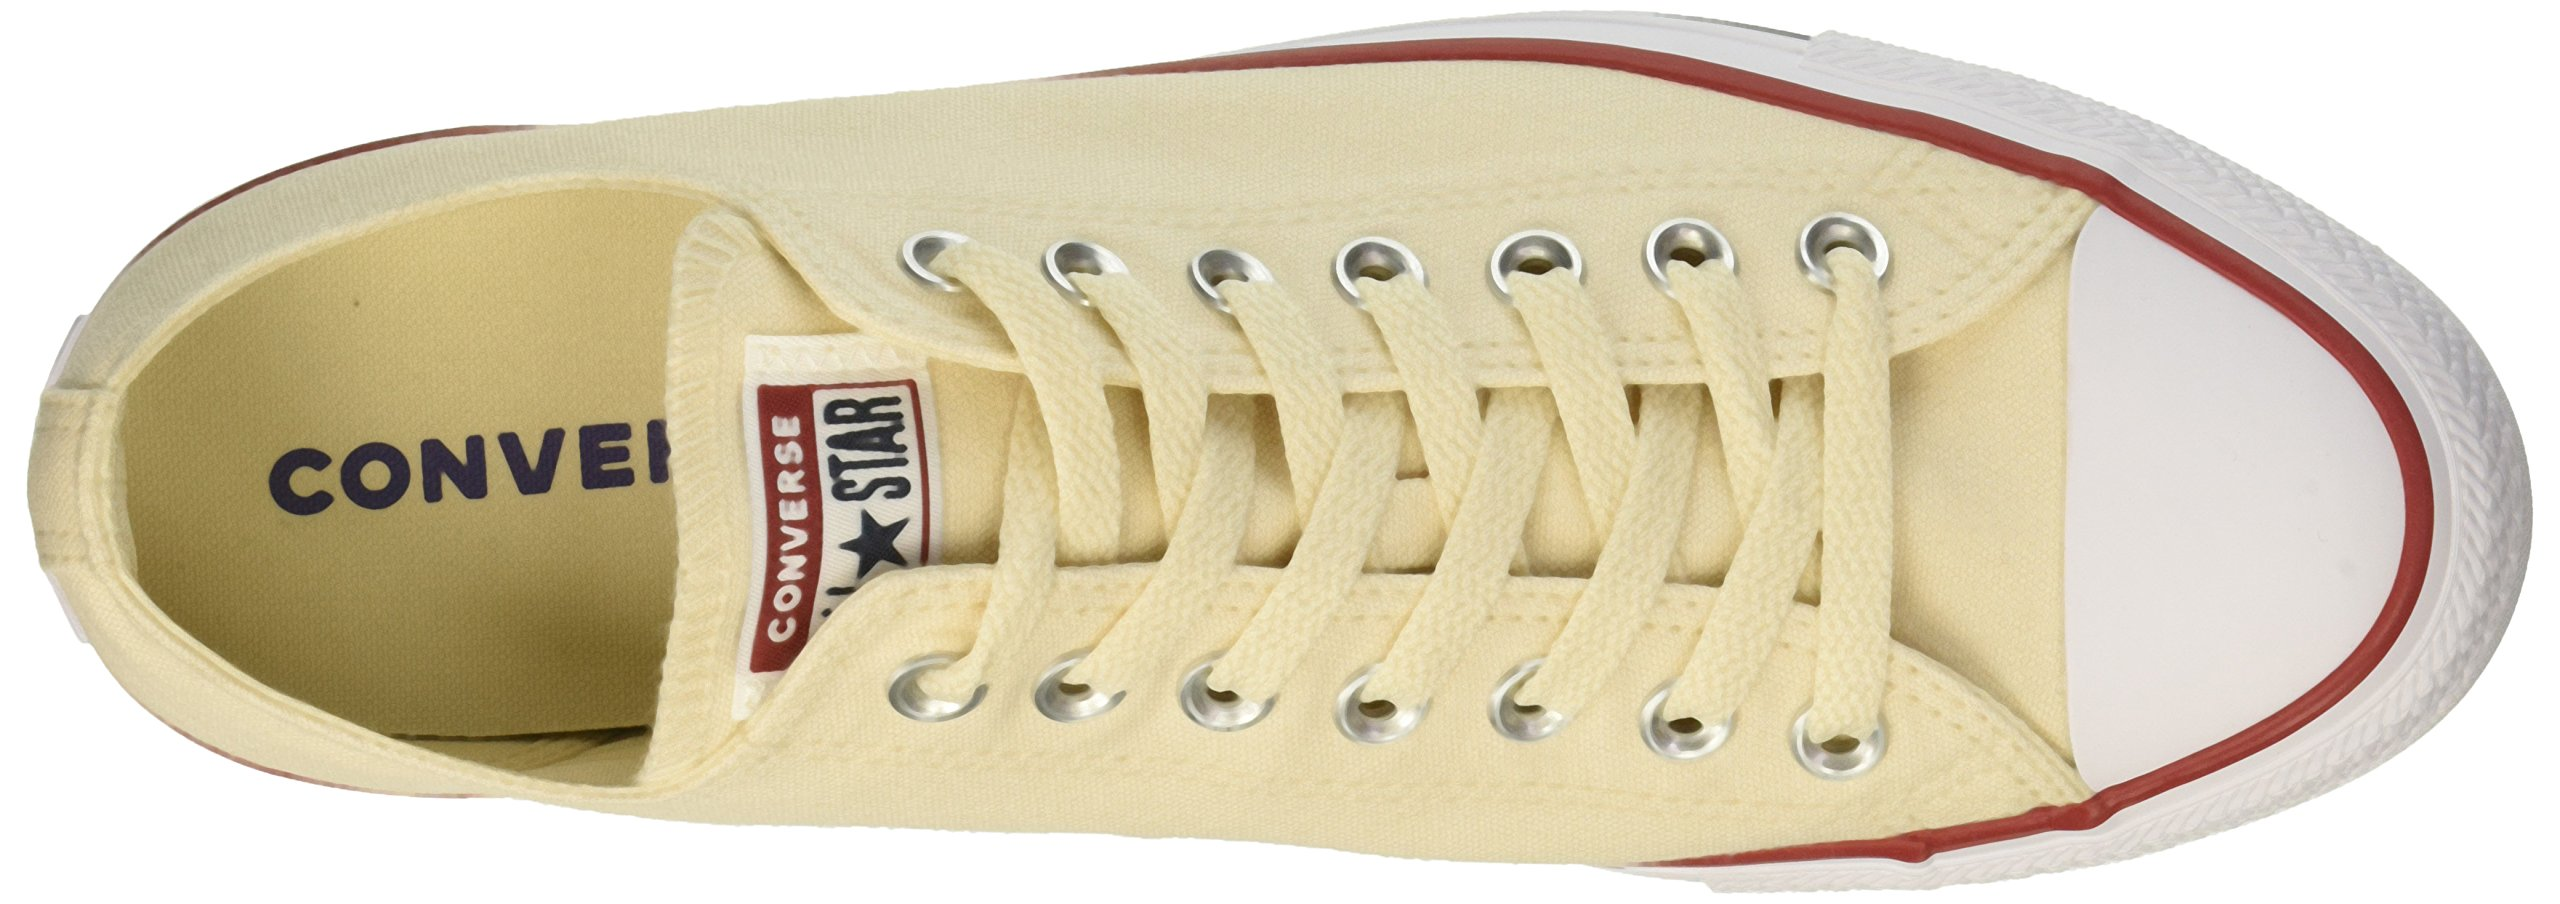 Converse Chuck Taylor All Star Low Top Sneaker, Natural Ivory, 11 M US by Converse (Image #7)